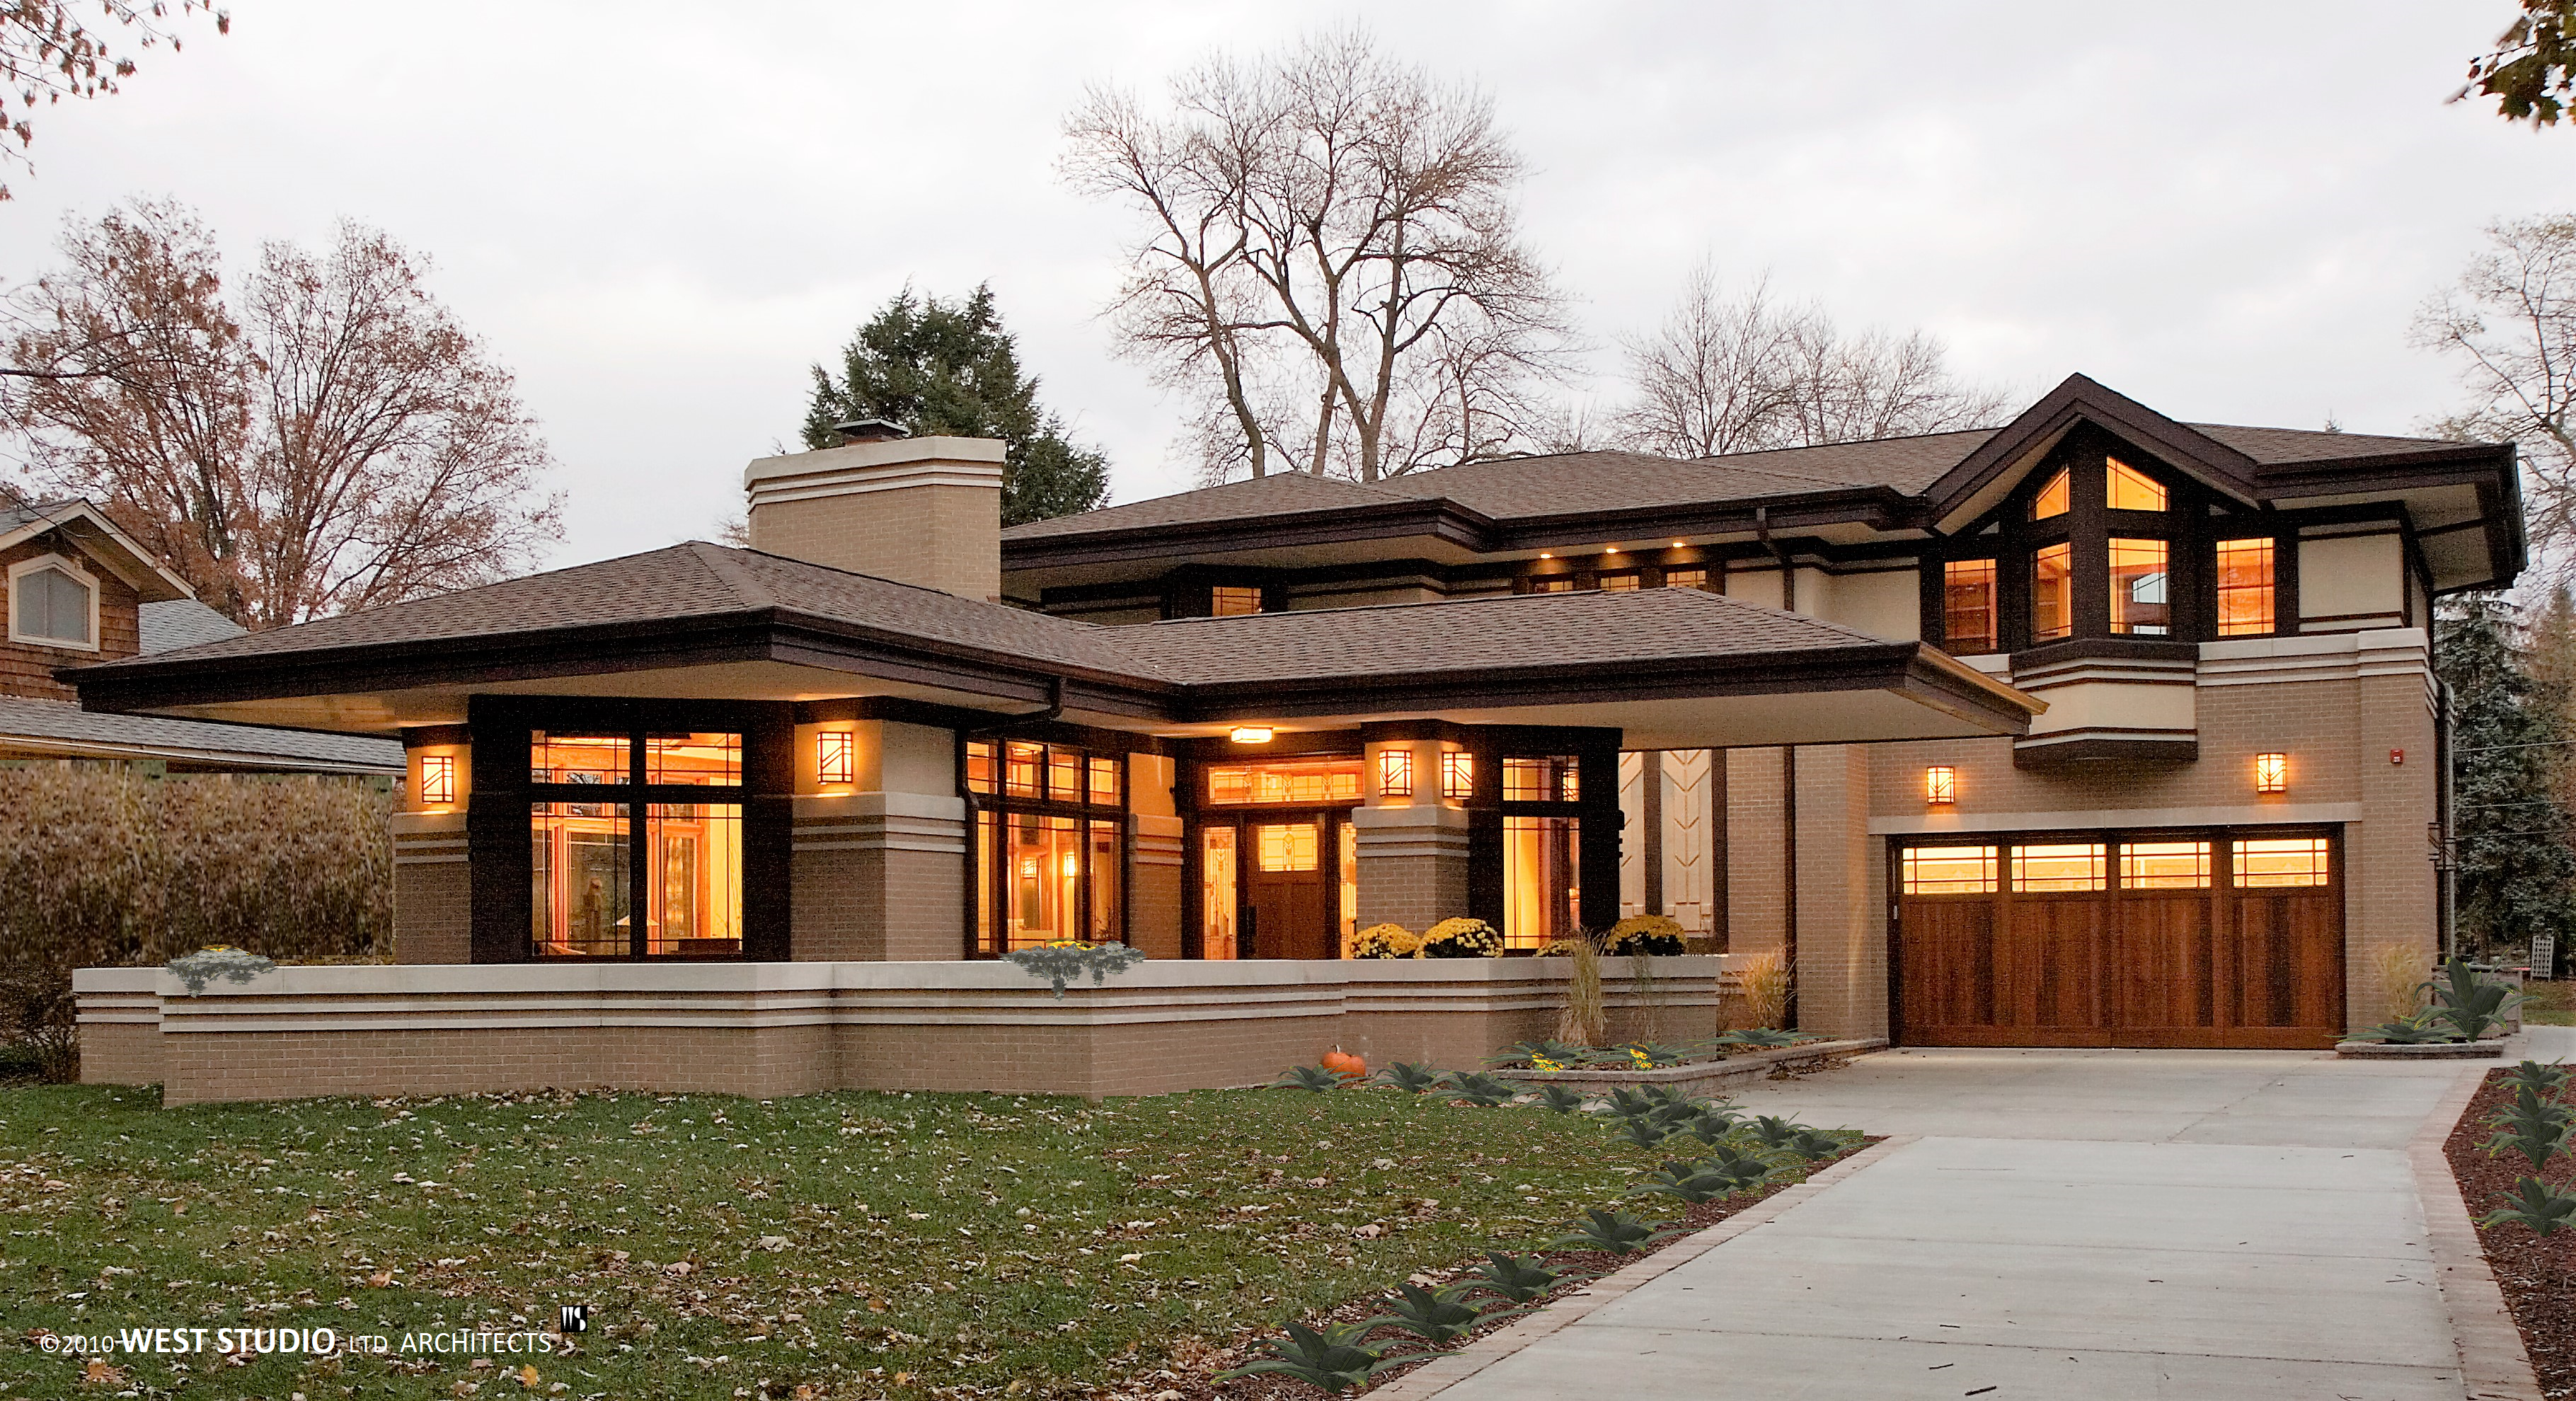 River forest residence prairie architect west studio - Frank lloyd wright style ...